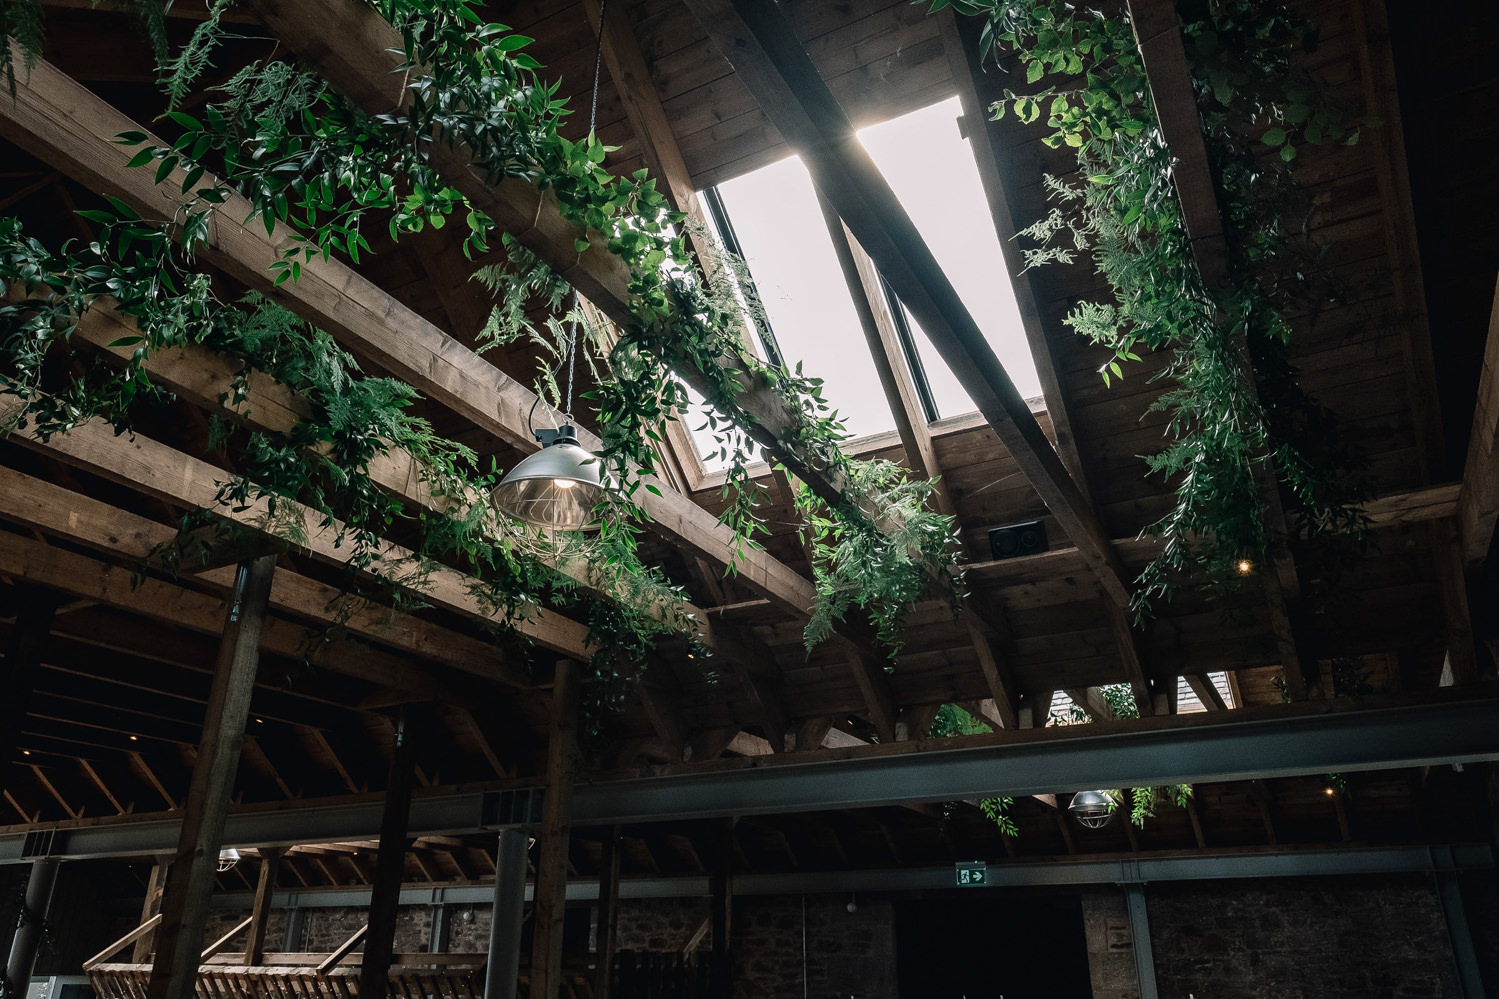 Wild flowers hang from the rafters of the Guardswell barn.